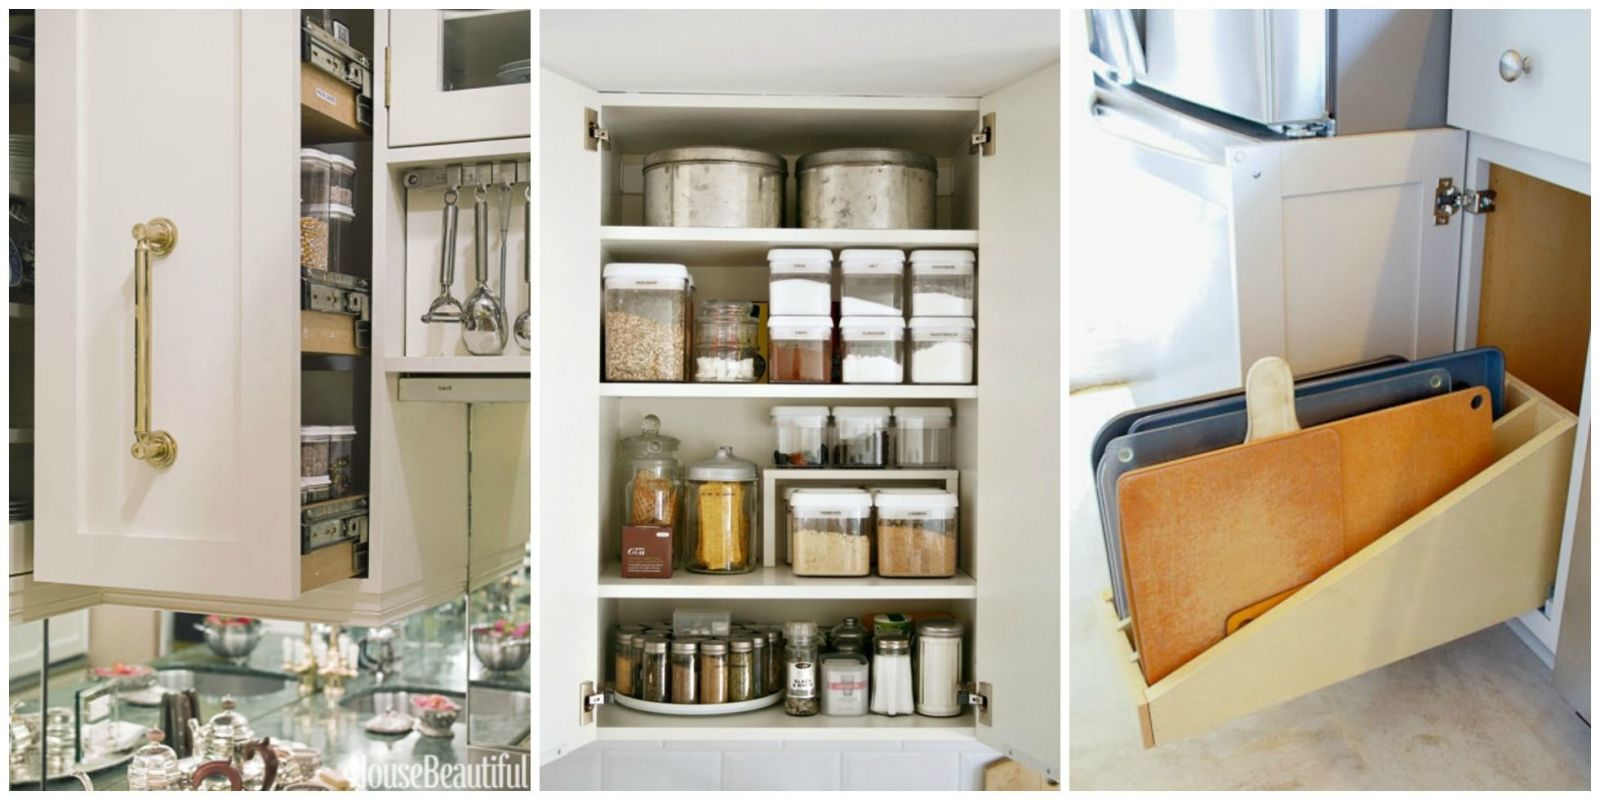 10 Kitchen Cabinet Tips: Organizing Kitchen Cabinets